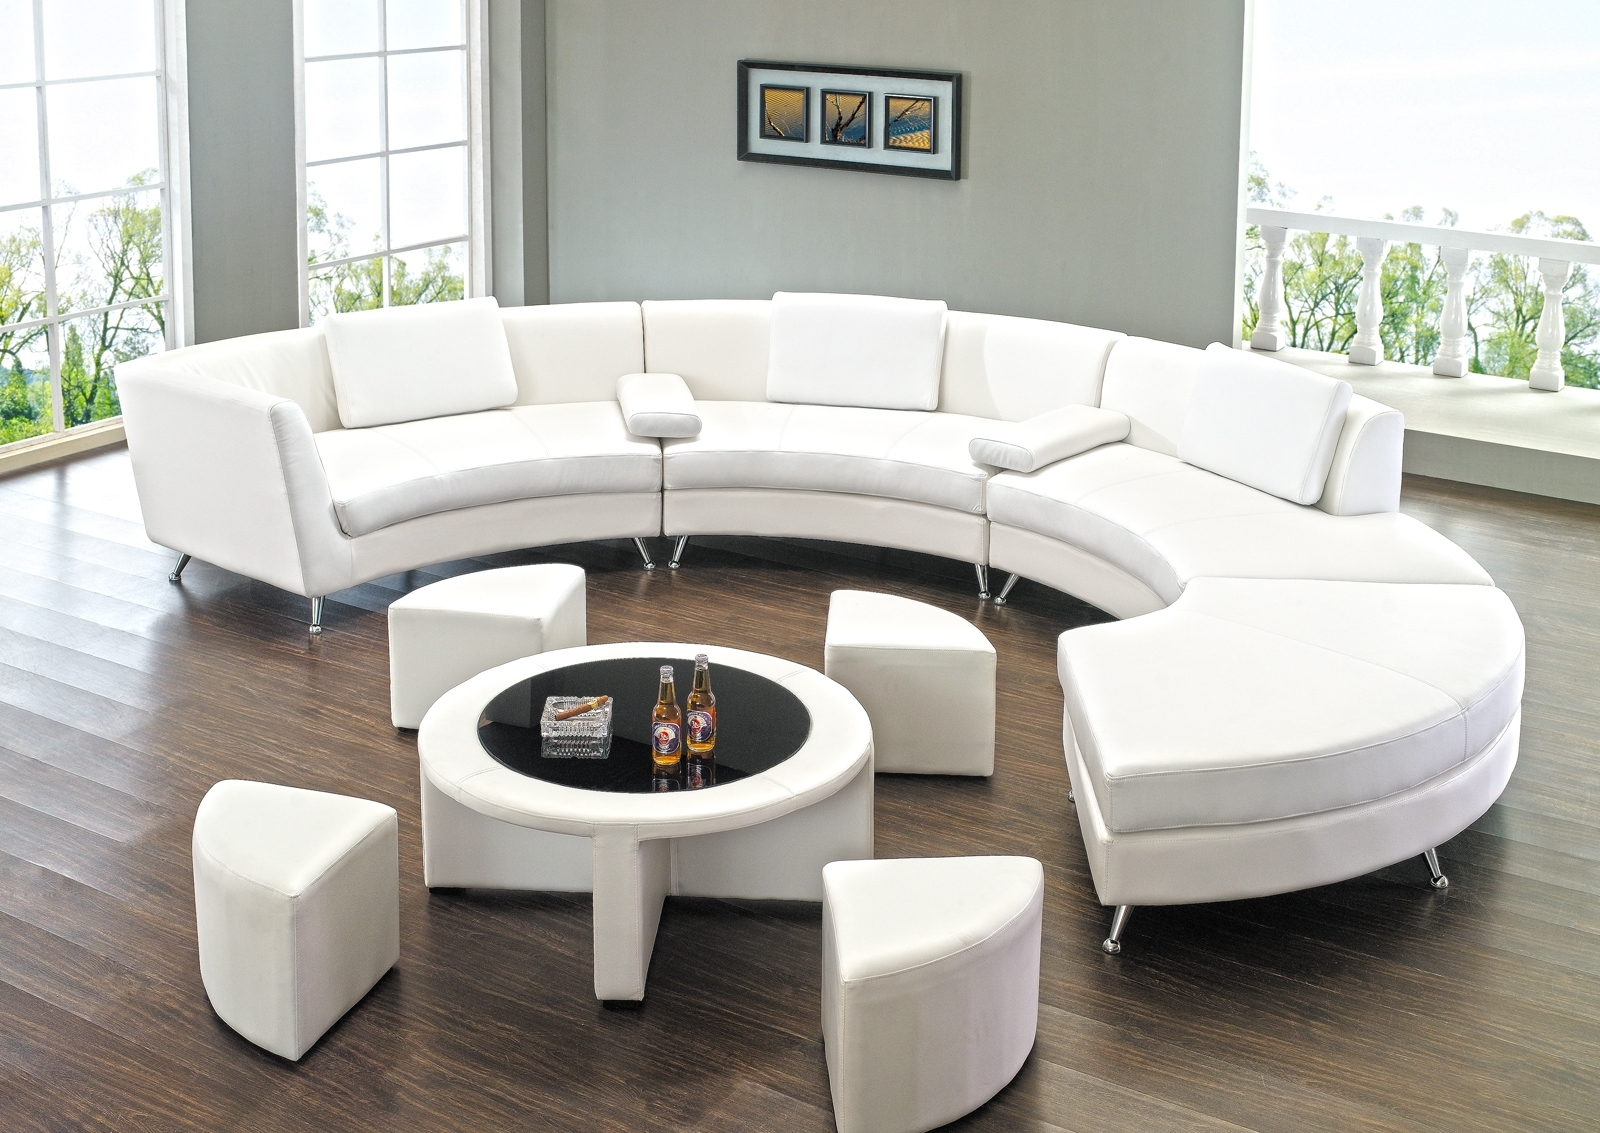 Sofas Center Stirring Circle Sectional Sofa Photoncept Circular With Regard To Circle Sectional Sofa (Image 14 of 15)